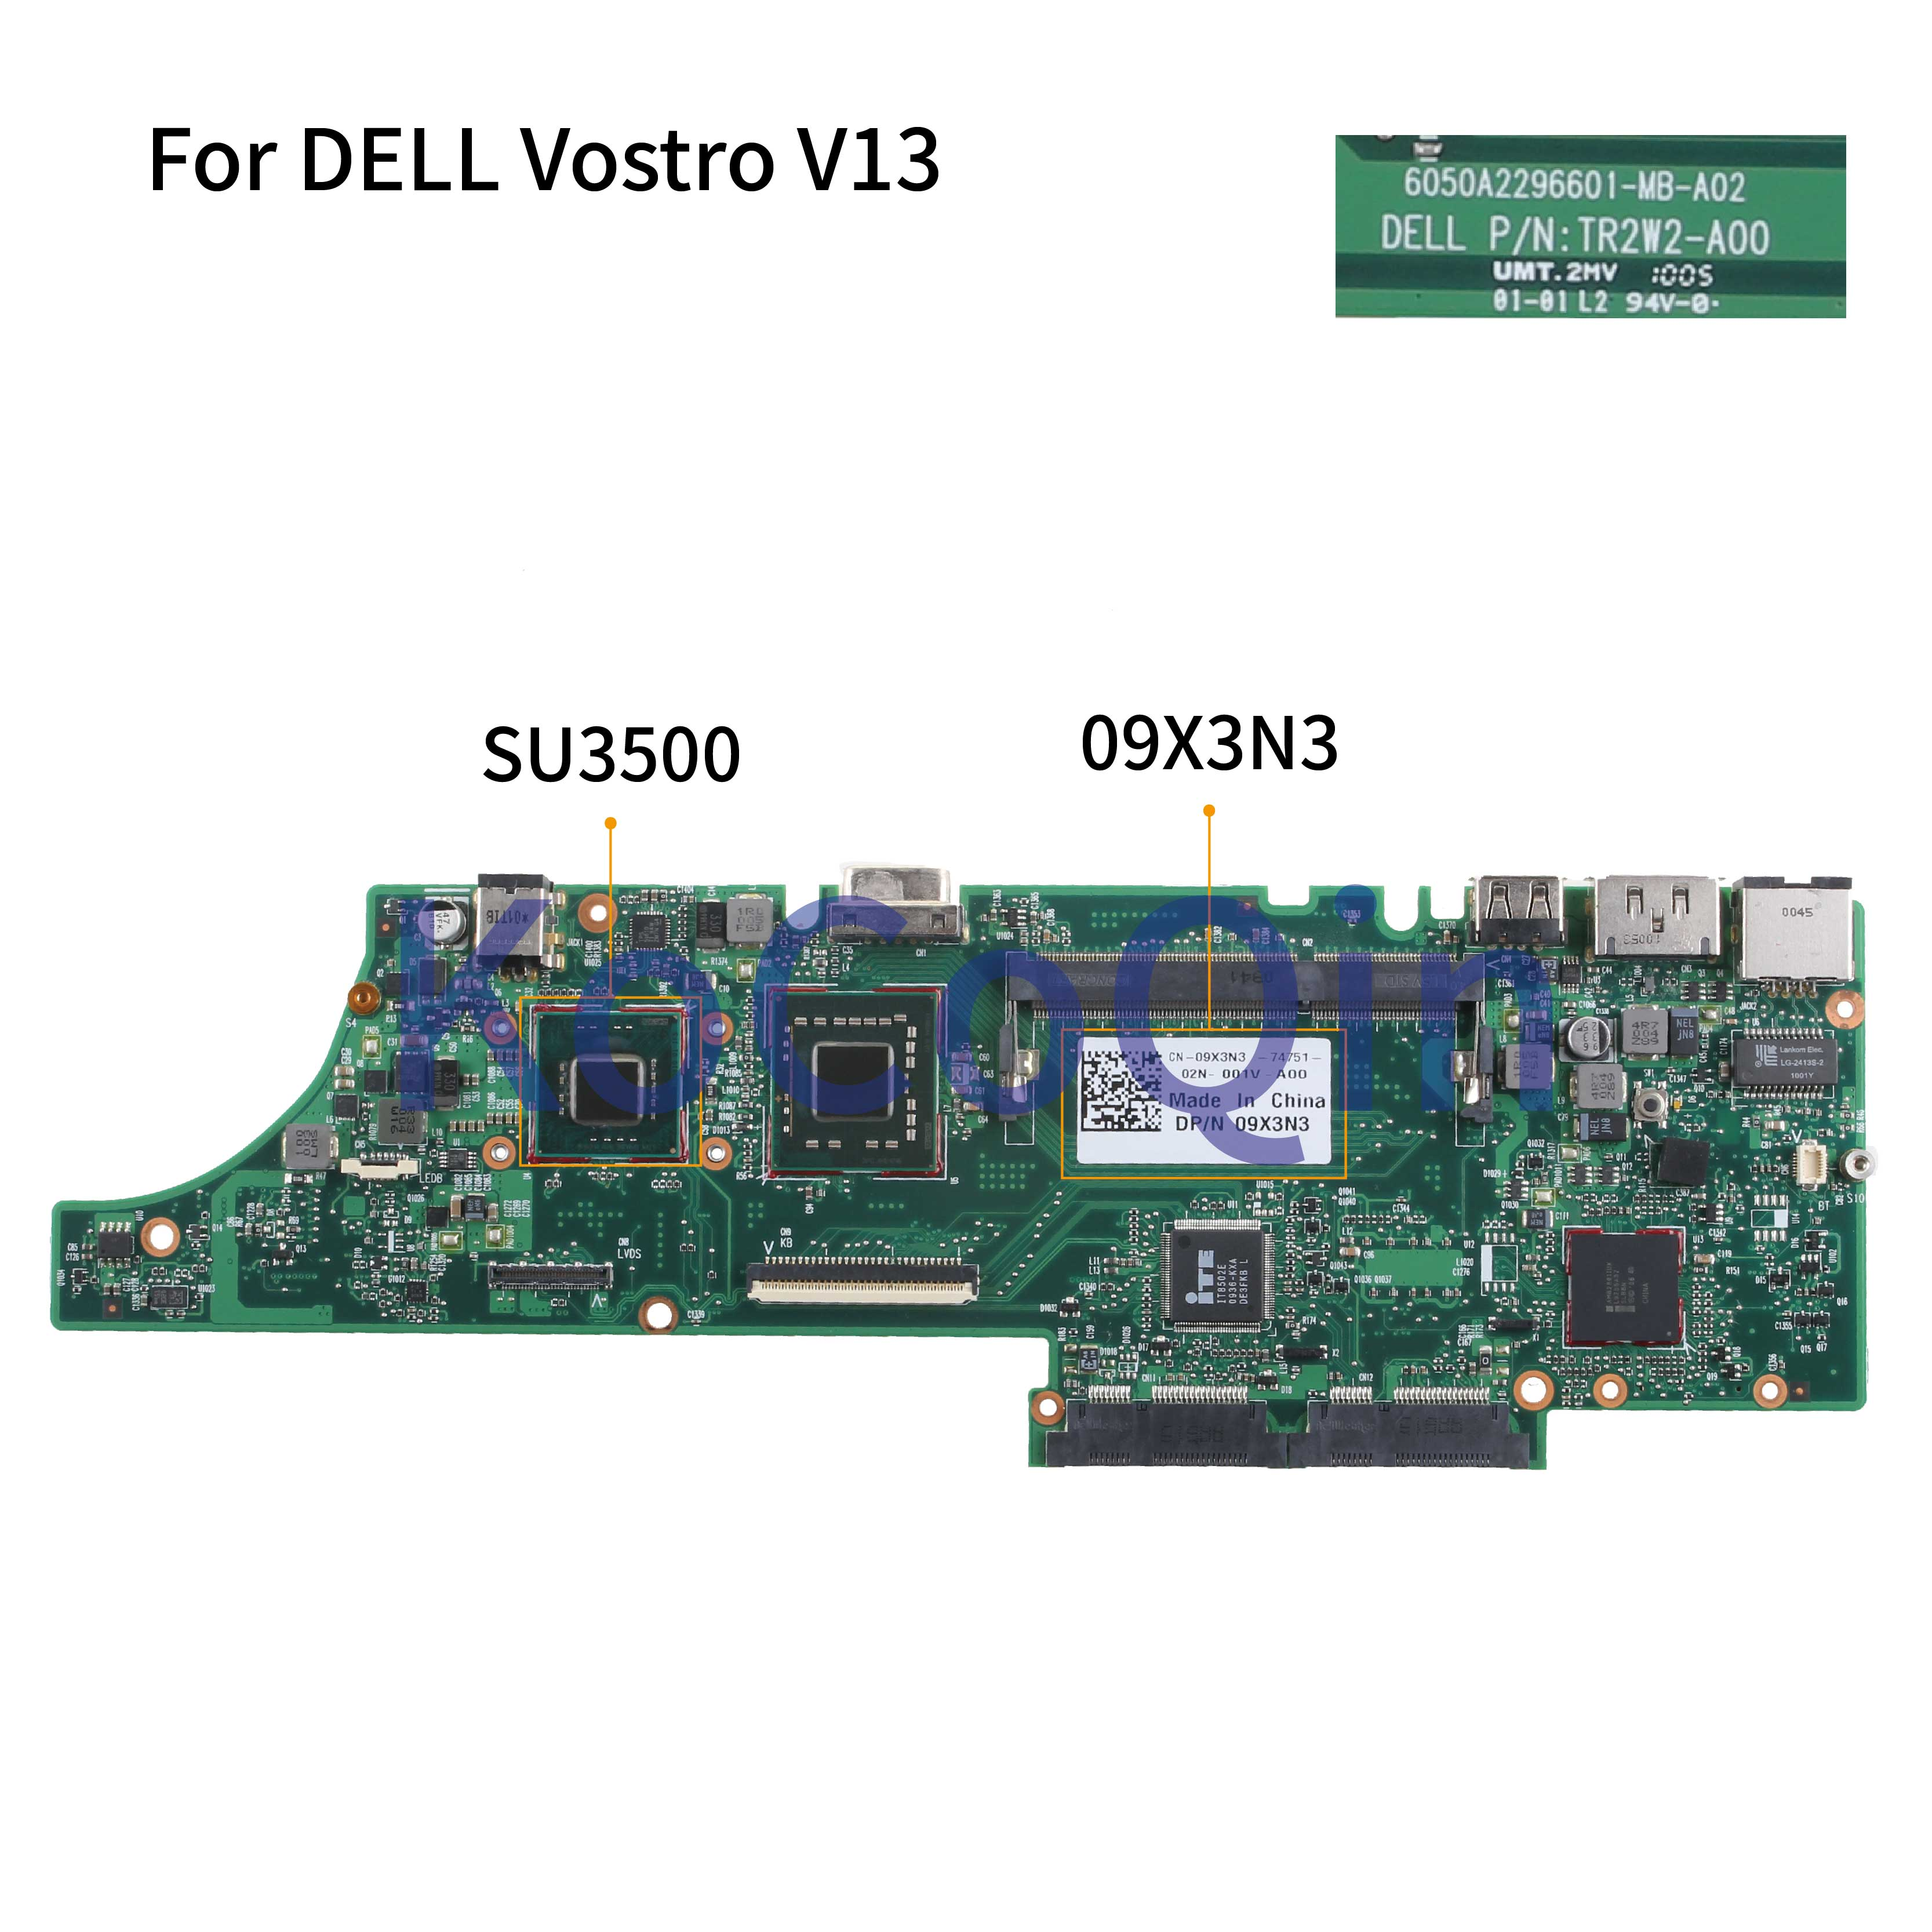 KoCoQin Laptop Motherboard For DELL Vostro 13 V13 SU3500 Mainboard CN-09X3N3 09X3N3 6050A2296601-MB-A02